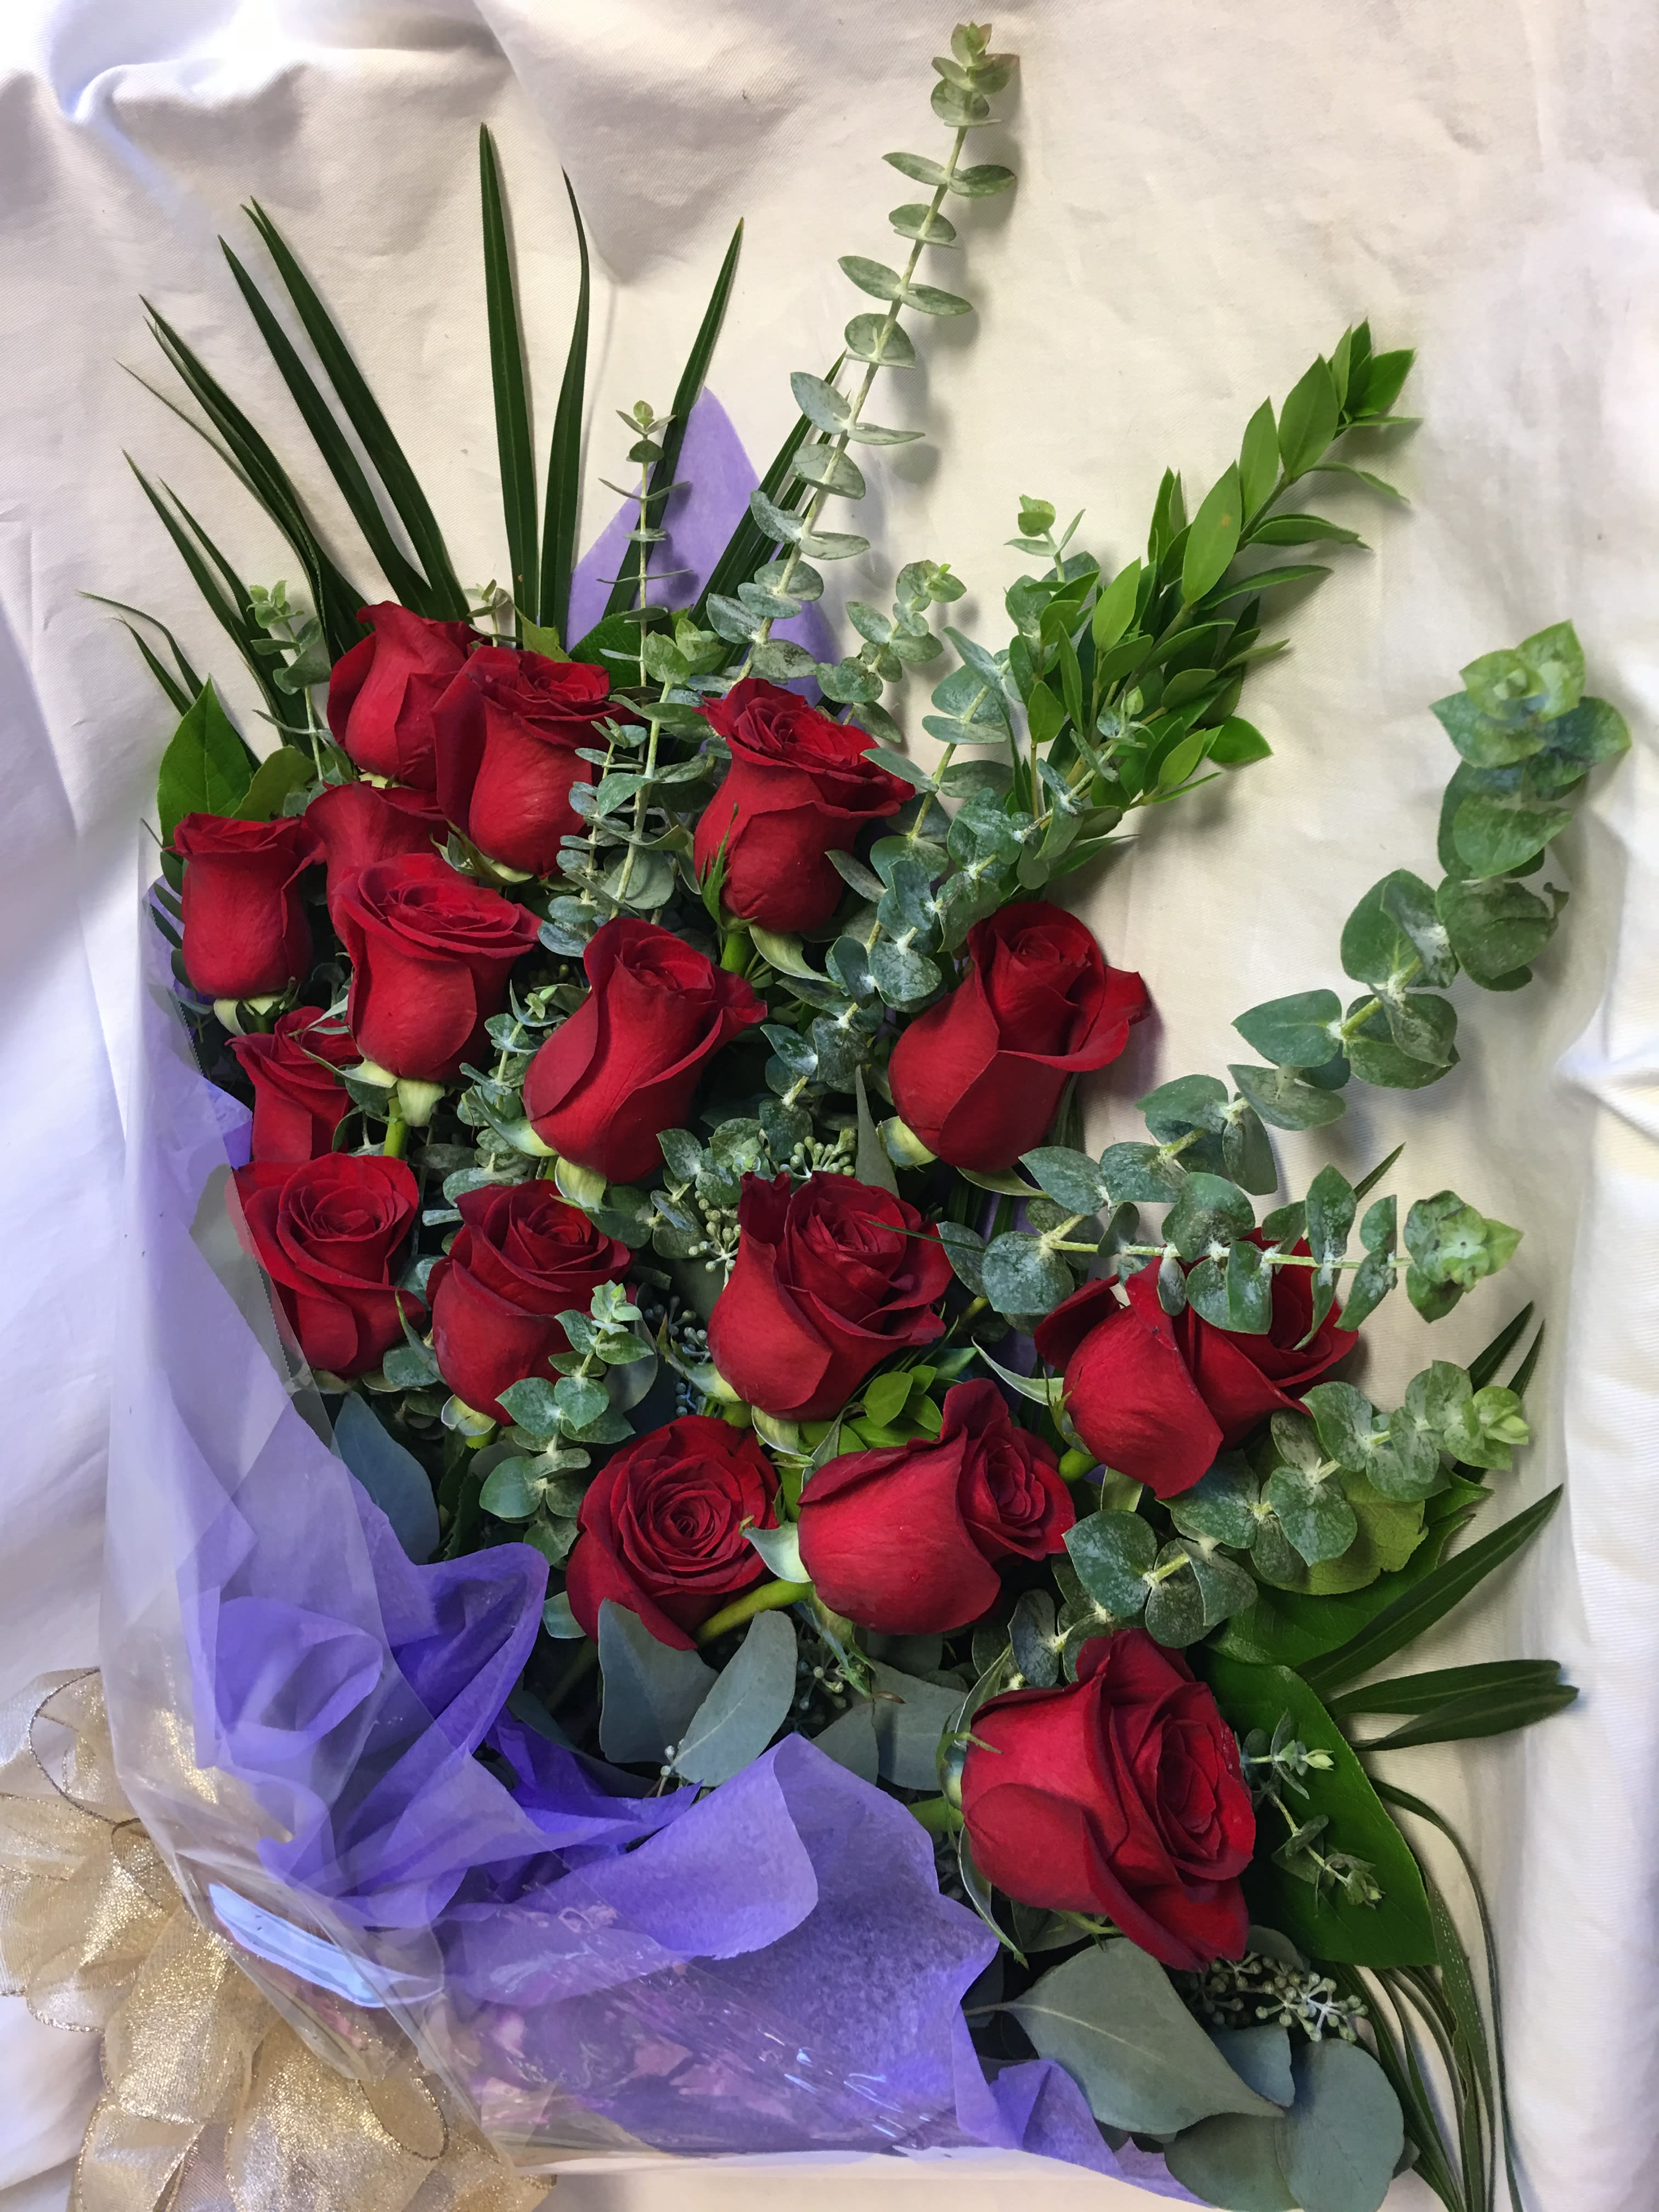 LOVE PRESENTED - 15 red roses hand-tied with greenery wrapped neatly in clear cellophane. Flowers ...